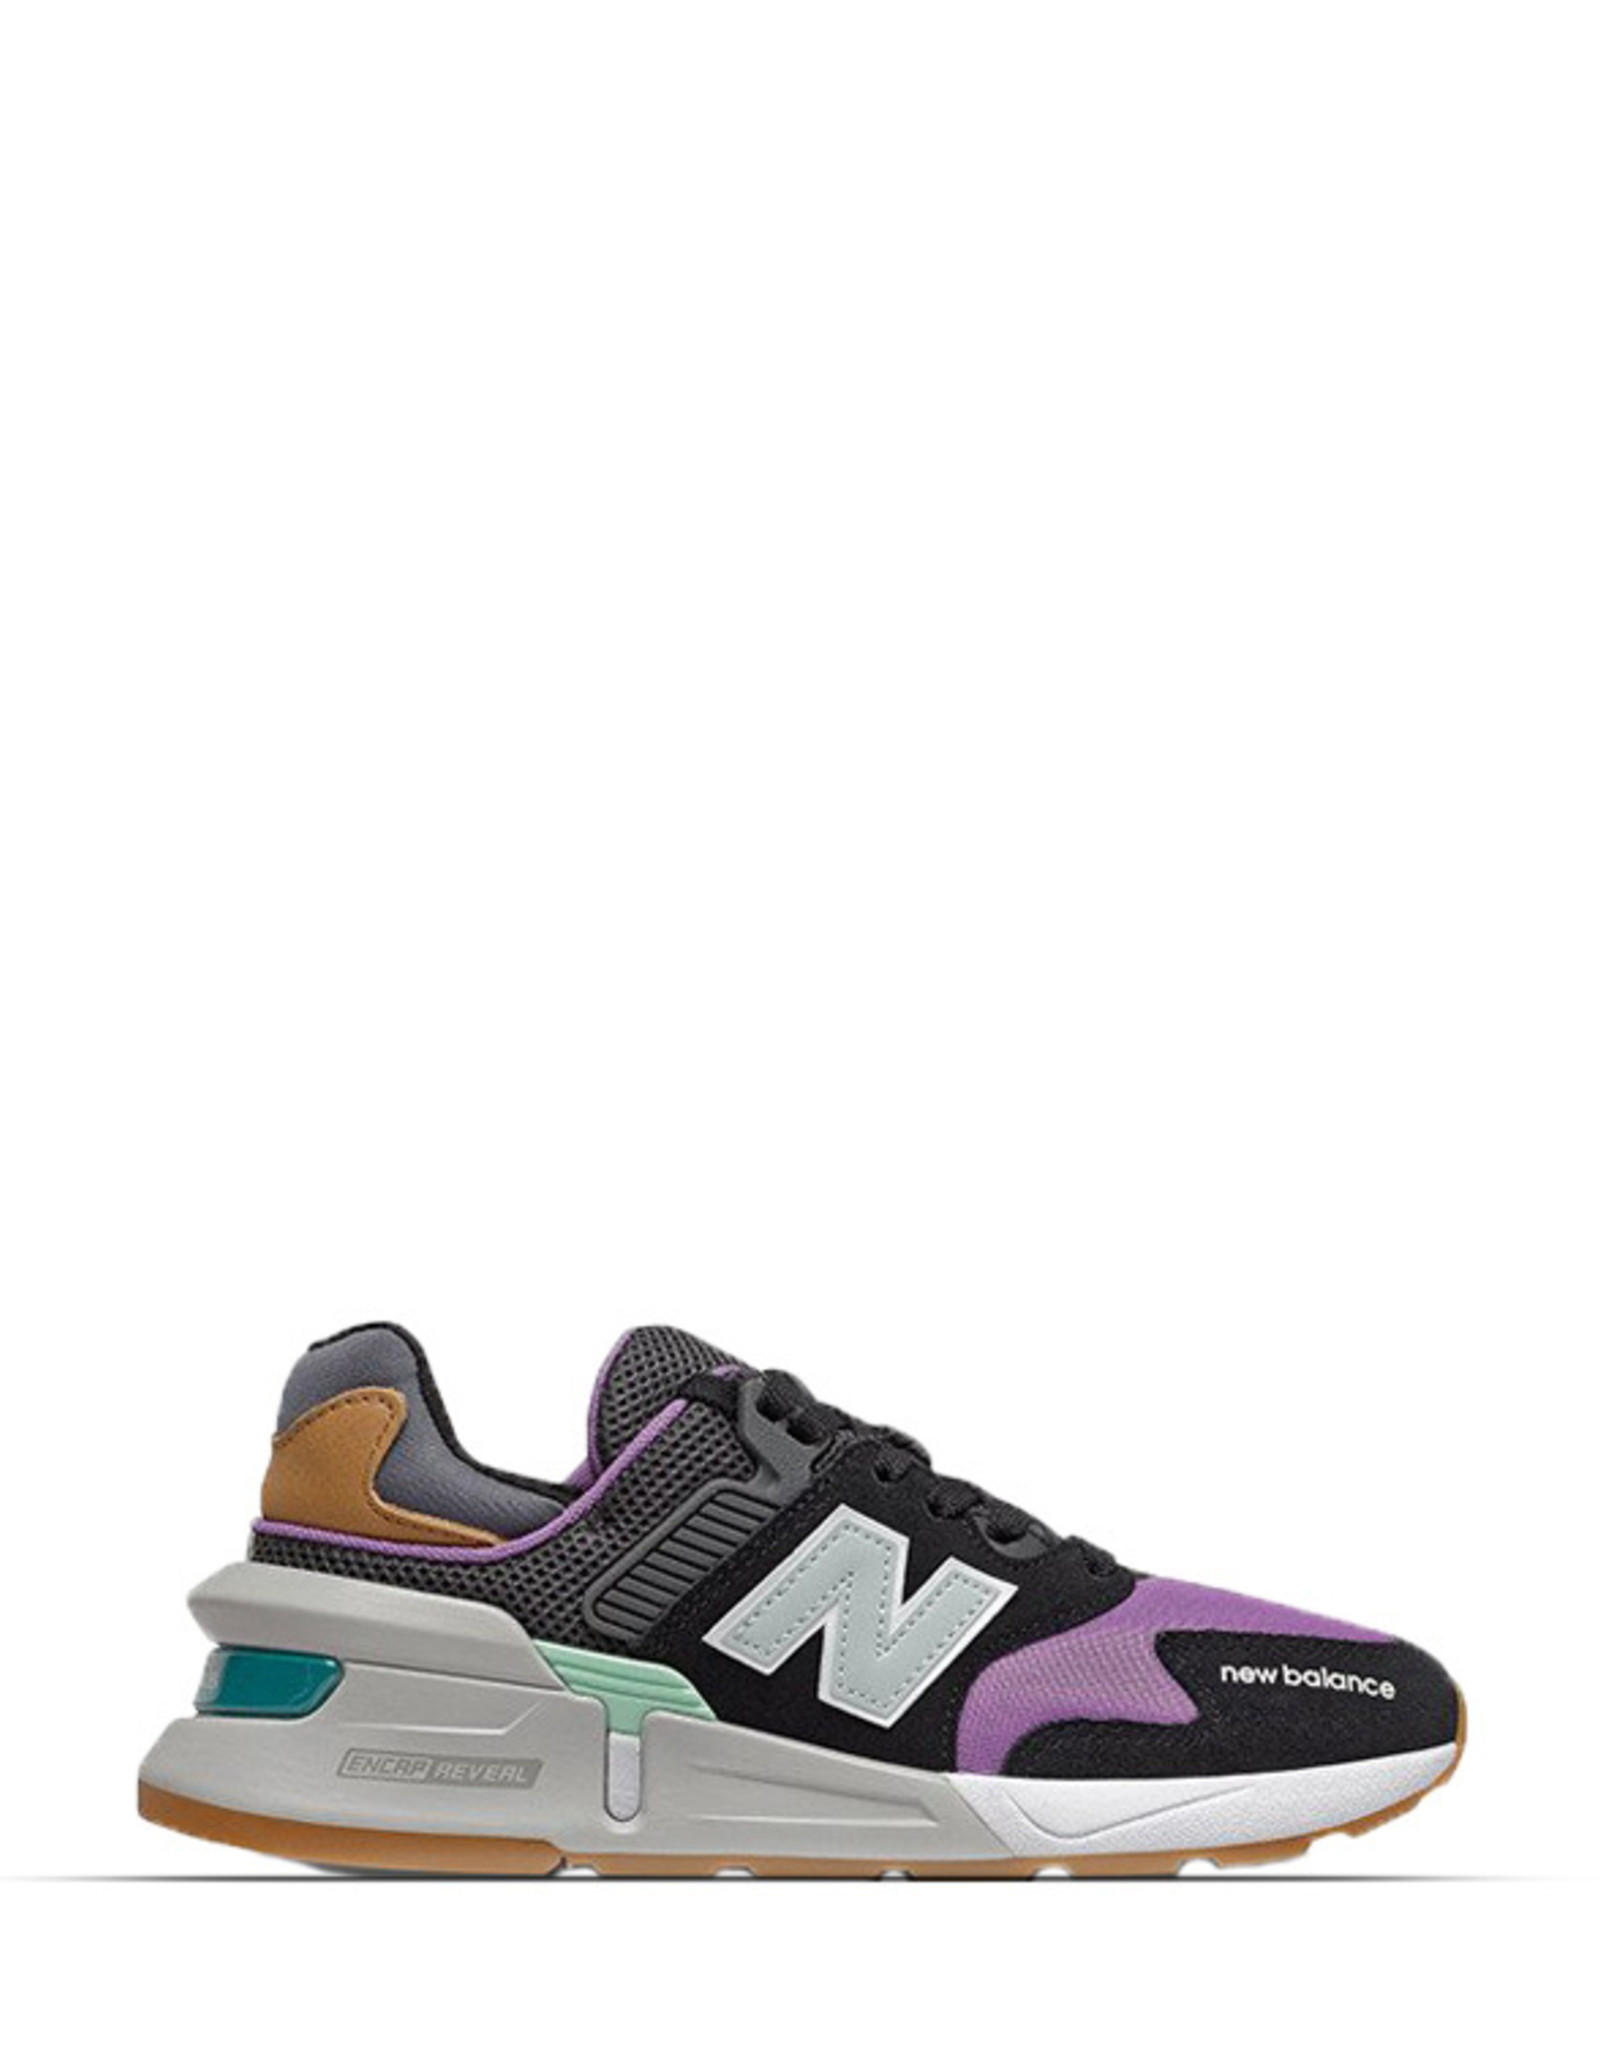 NEW BALANCE 997 SPORT - CHARCOAL PURPLE